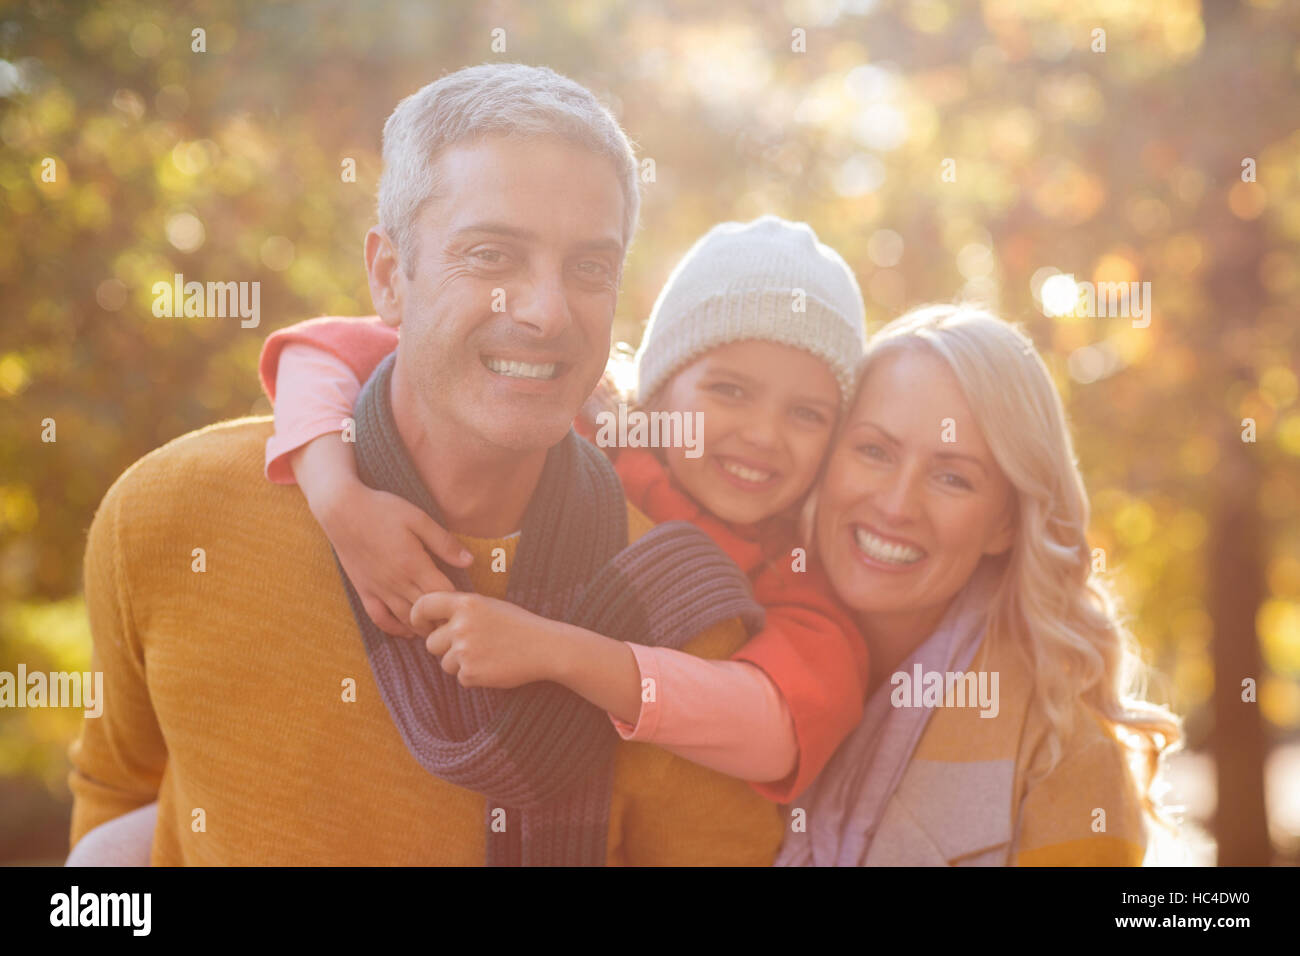 Portrait of happy family against trees - Stock Image